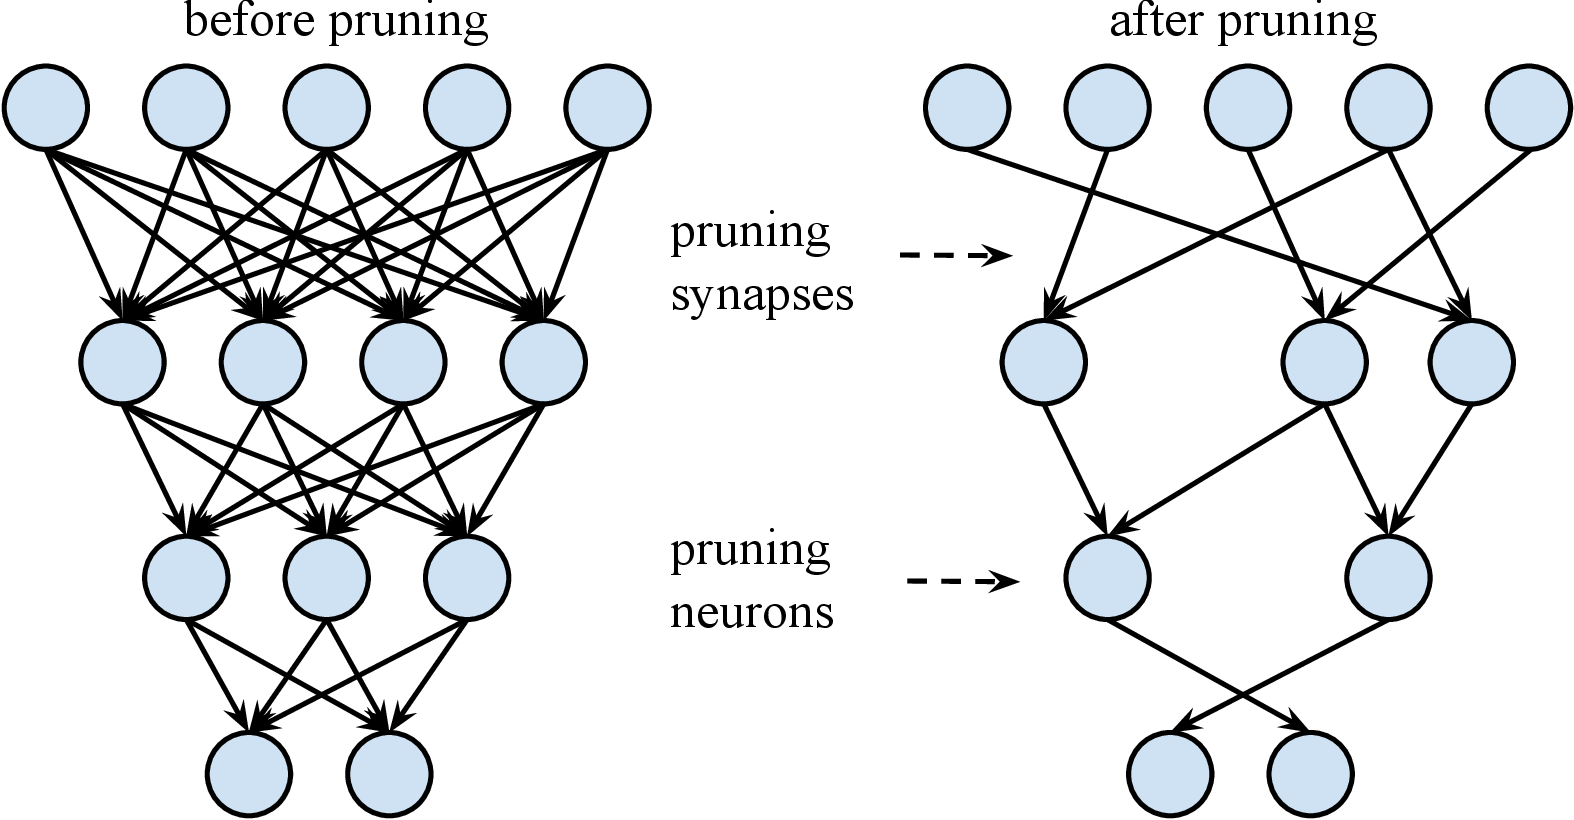 Figure 3 for Fast inference of deep neural networks in FPGAs for particle physics